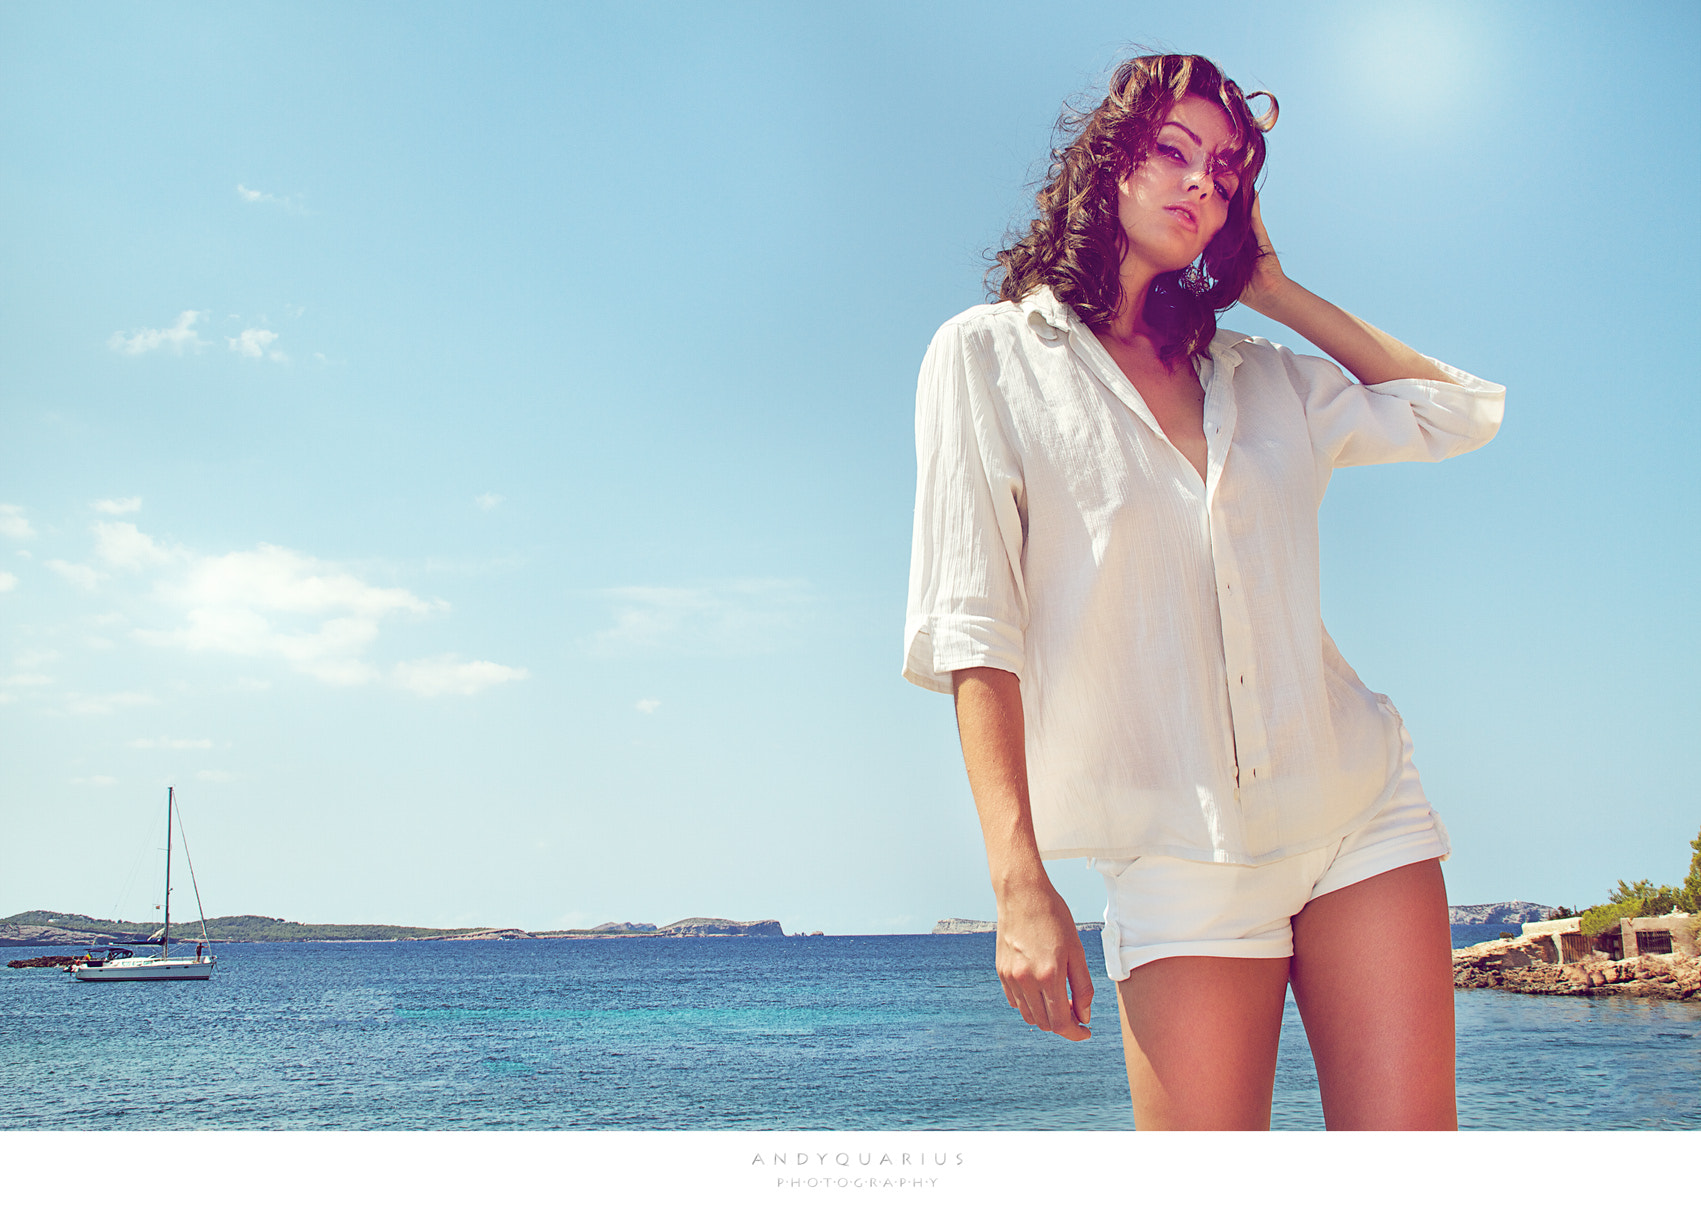 Photograph ibiza editorial by Andy Quarius on 500px